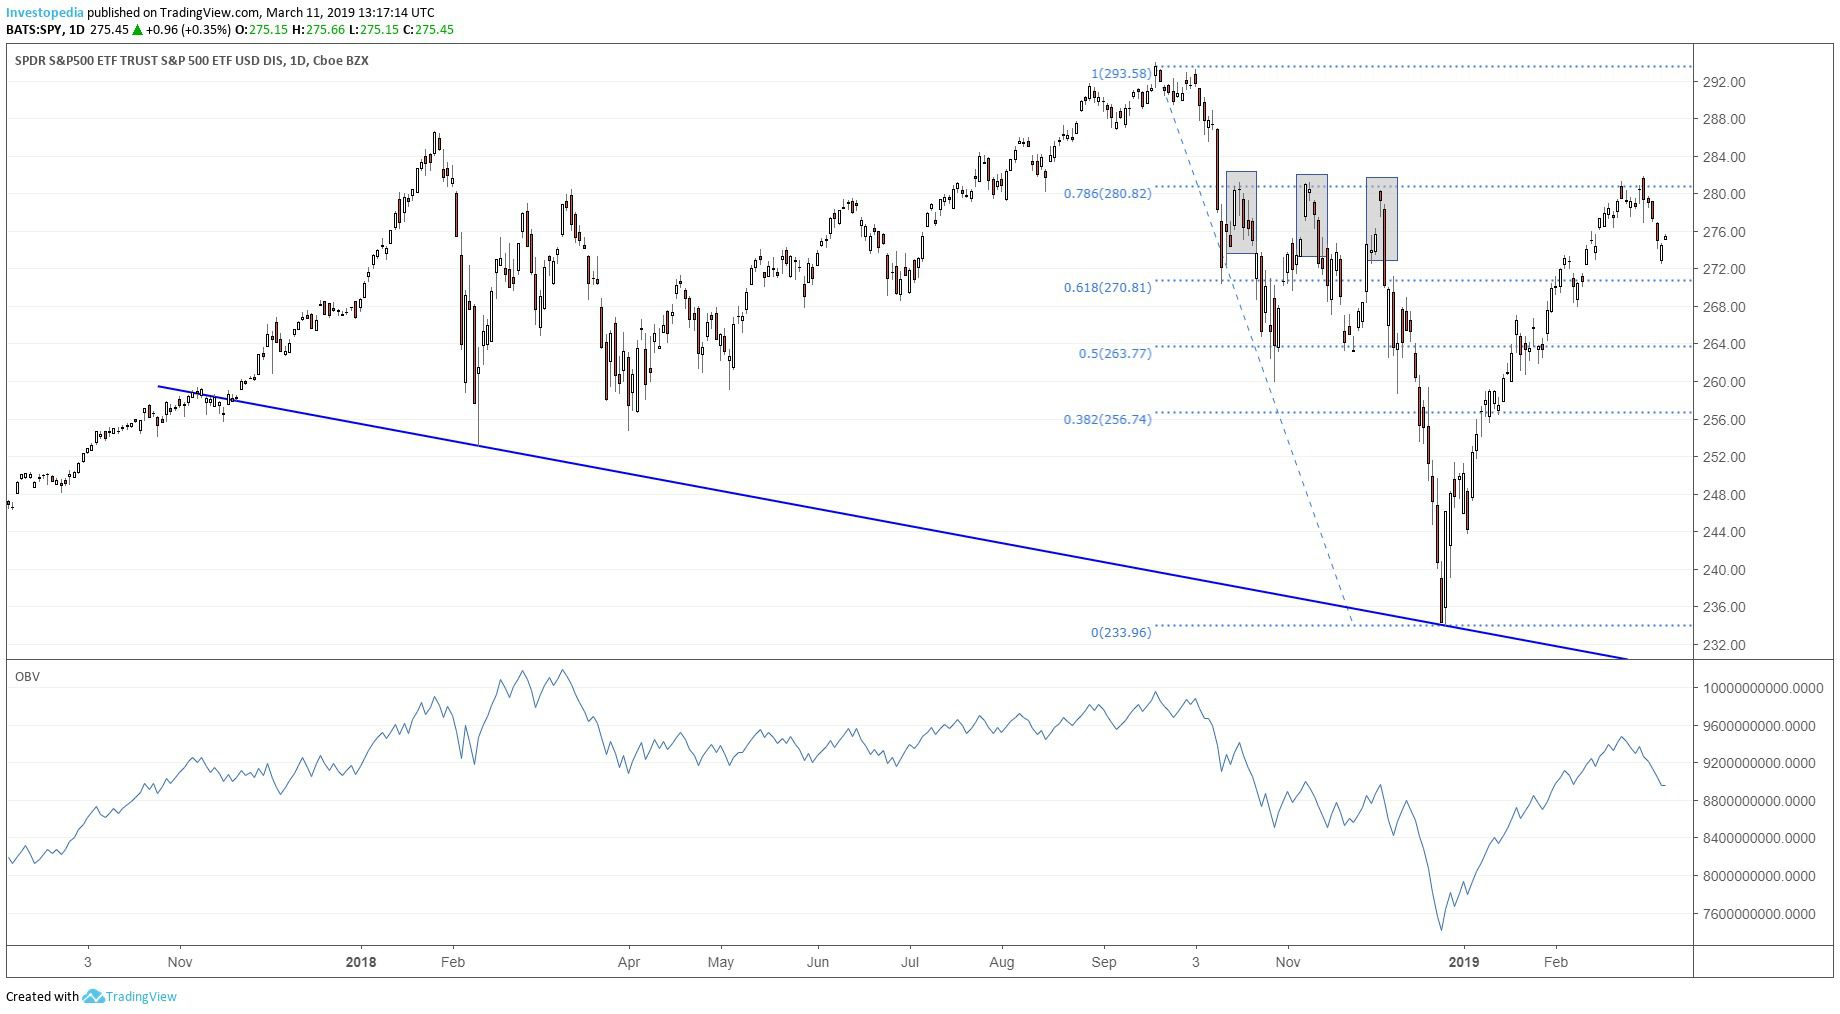 Triple Witching Could Trap Bears in Strong Bounce